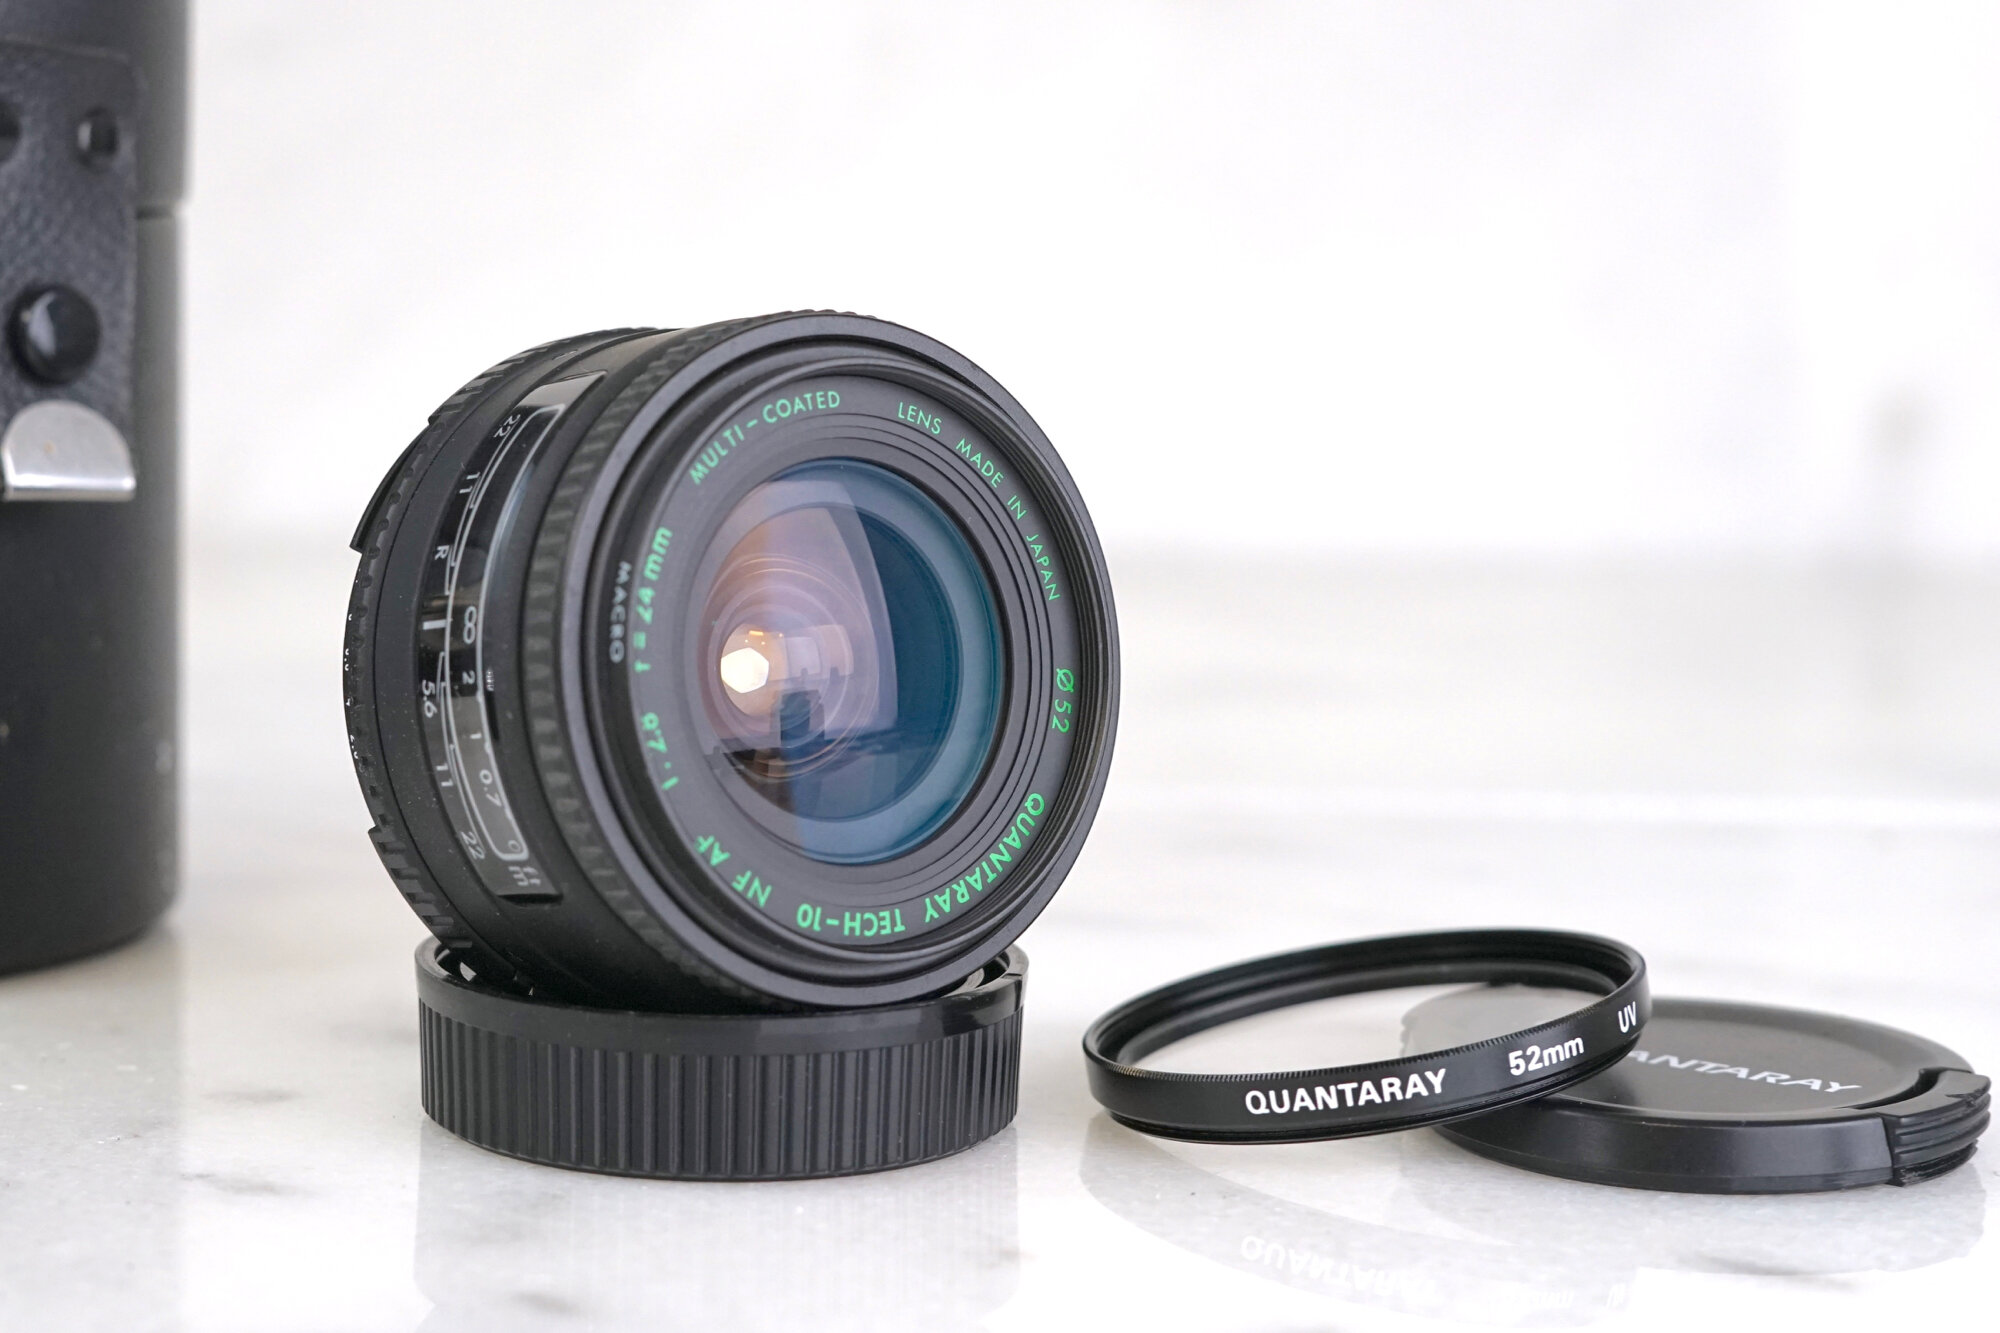 Fit A1 AE-1 Older Camera Canon FL 200mm f//1:3.5 Lens with Built-In Metal Hood